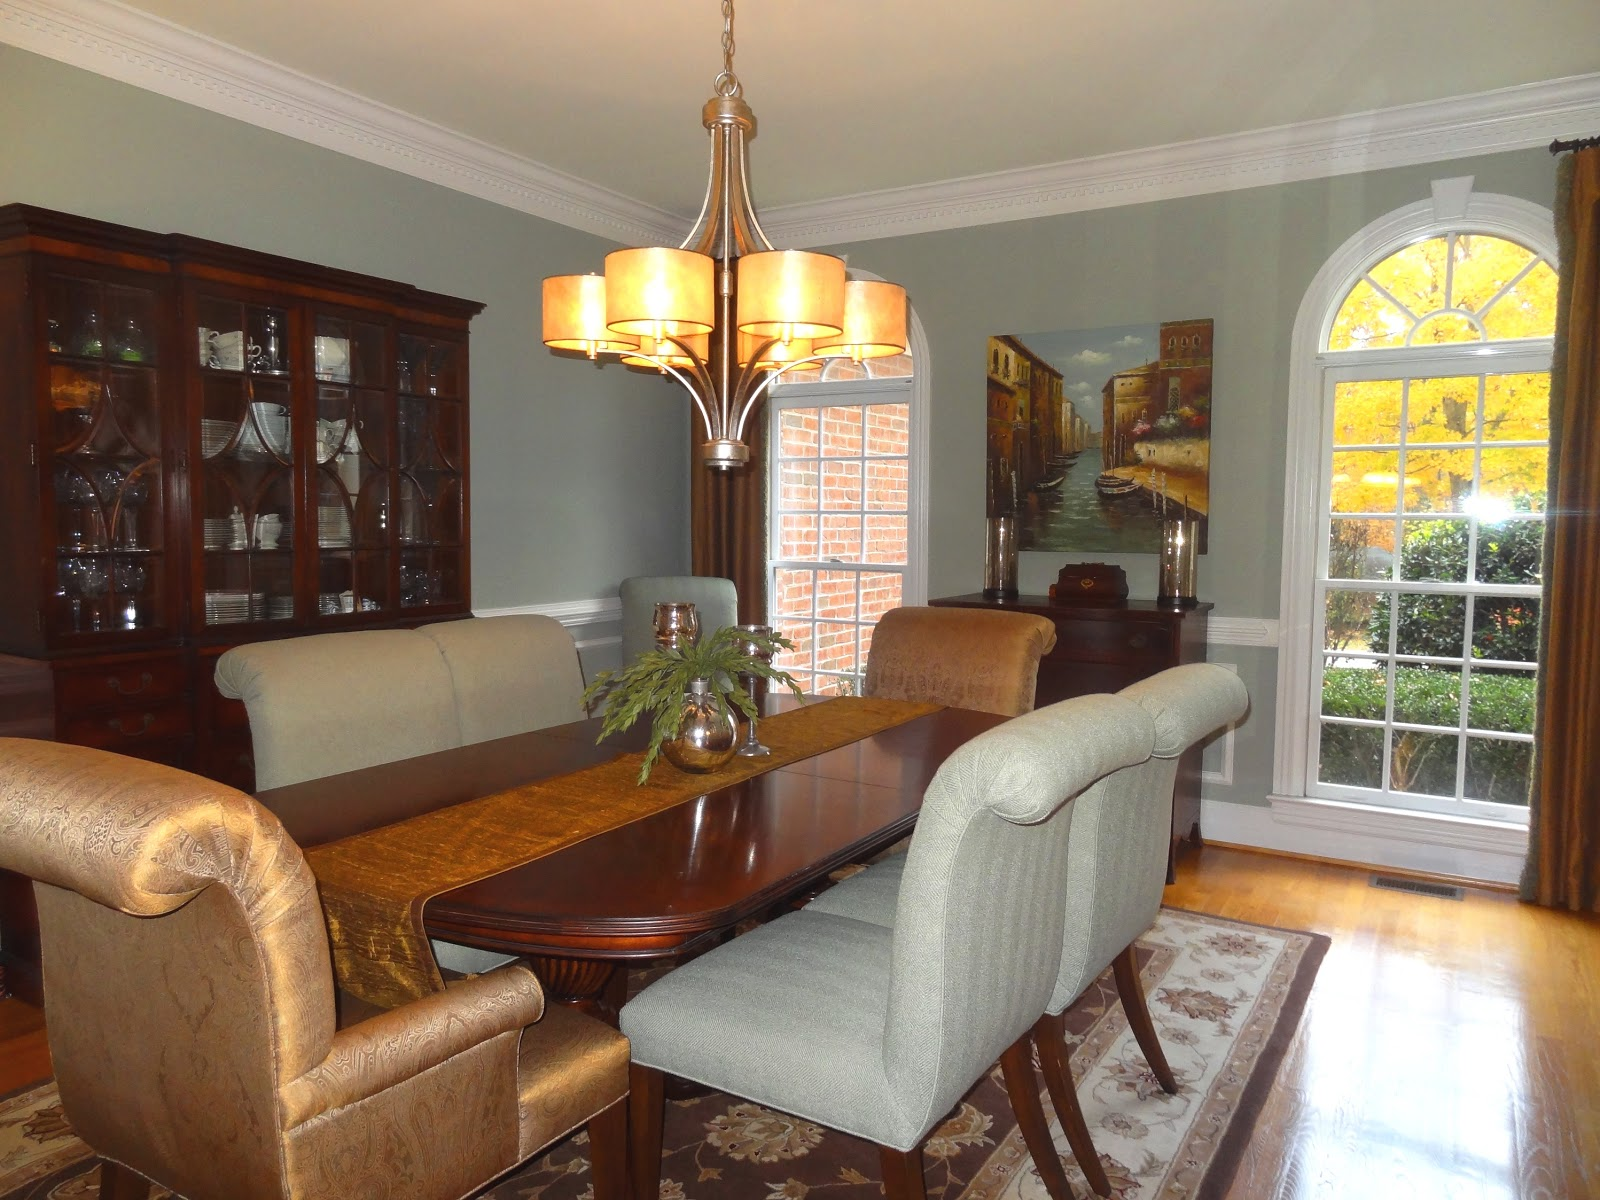 Fabulous Dining Room Chandeliers (View 9 of 19)